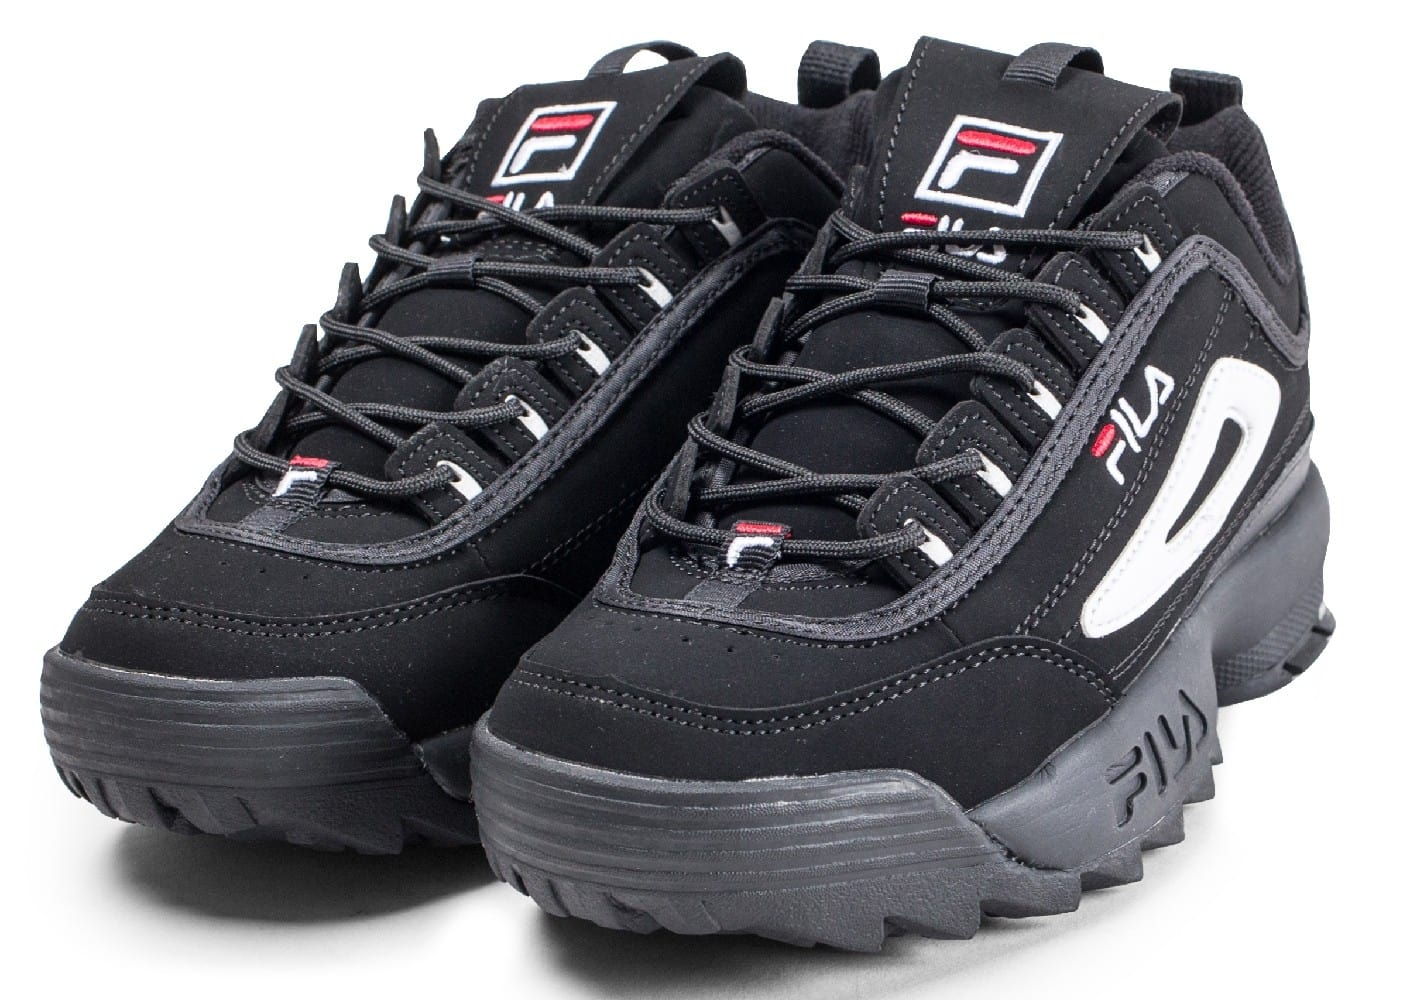 official store sale uk release info on Fila Disruptor II junior noire et blanche - Chaussures ...